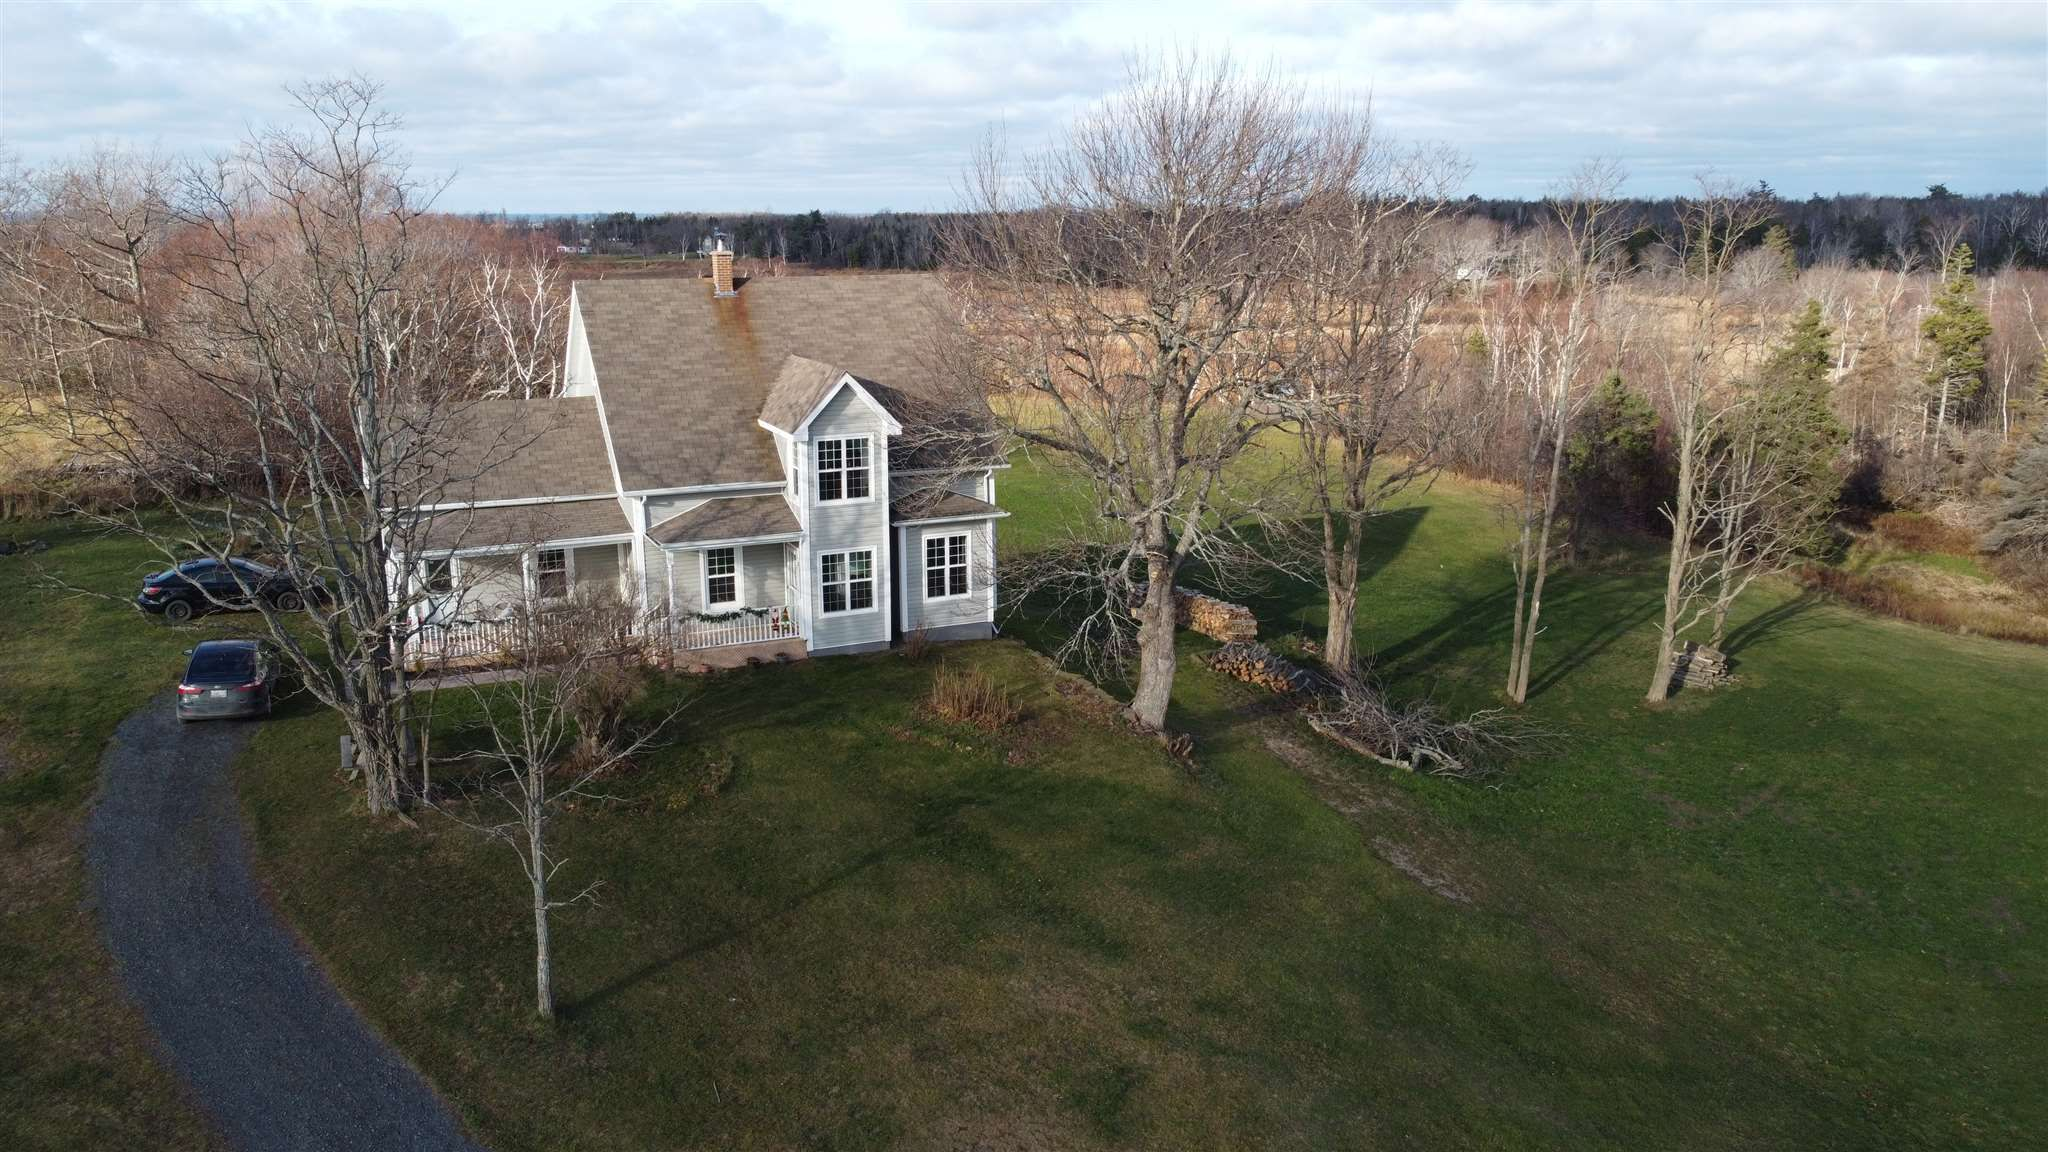 Main Photo: 3380 Piedmont Valley Road in Lower Barneys River: 108-Rural Pictou County Residential for sale (Northern Region)  : MLS®# 202100779